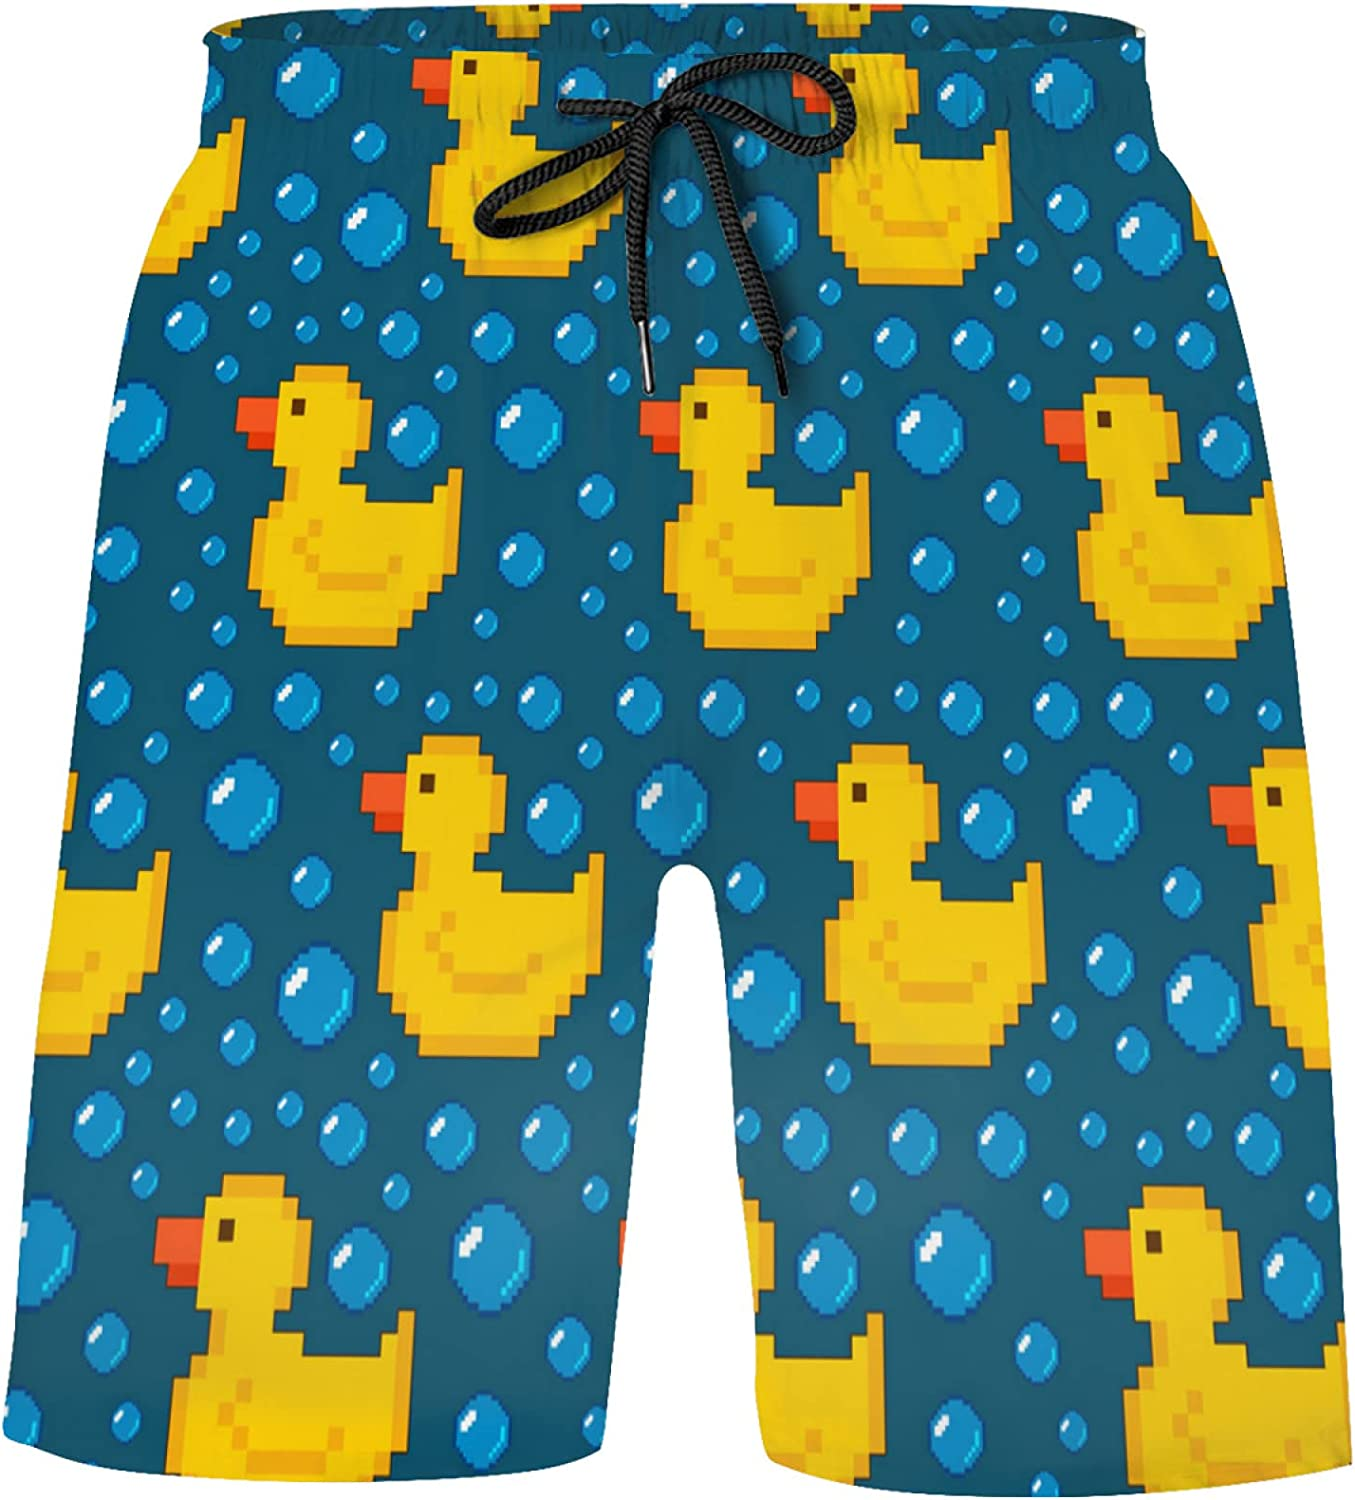 Yellow Rubber Duck On Turquoise Bubble Bathing Suits Athletic Beach Shorts Swim Trun